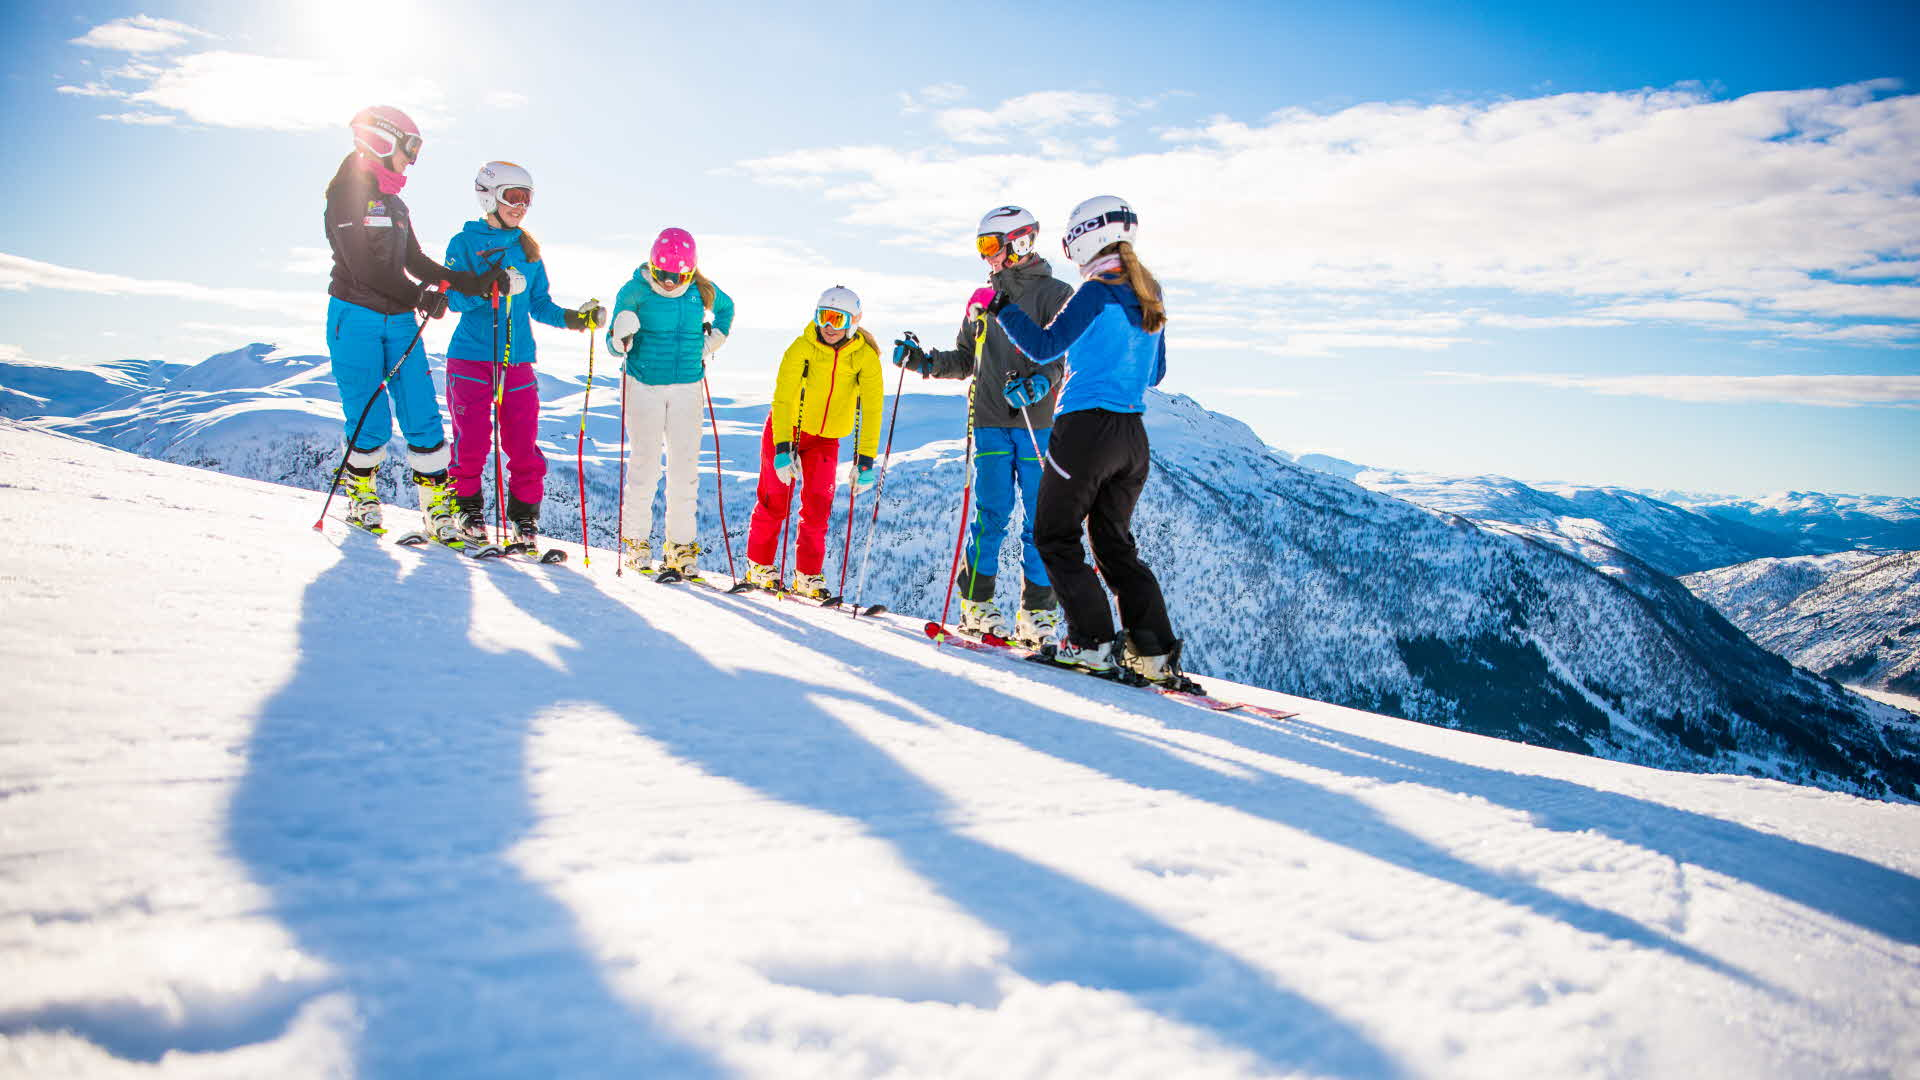 6 people in alpine downhill gear standing at Myrkdalen Ski Resort ski slopes on crisp sunny day overlooking the winter landscape